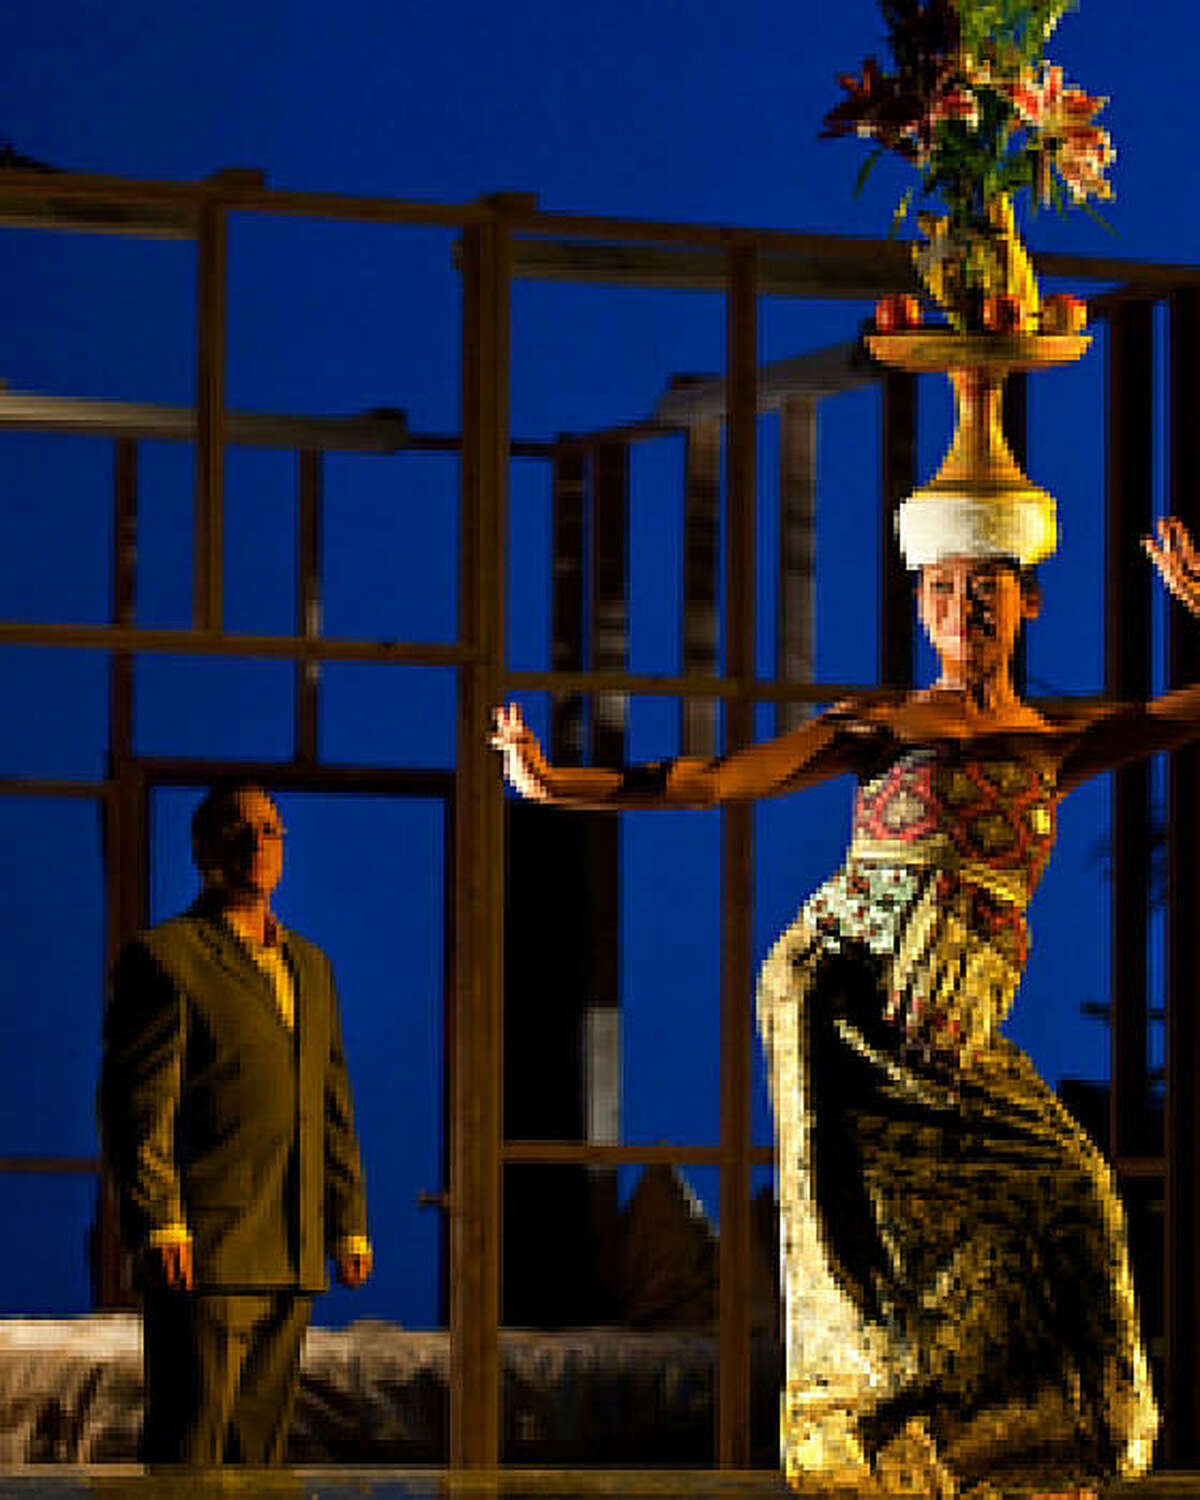 Haute-contre Marc Molomot and dancer/choreographer Kadek Dewi Aryani in Evan Ziporyn's new opera A House in Bali, the American premiere is presented by Cal Performances on September 26 & 27, 2009.